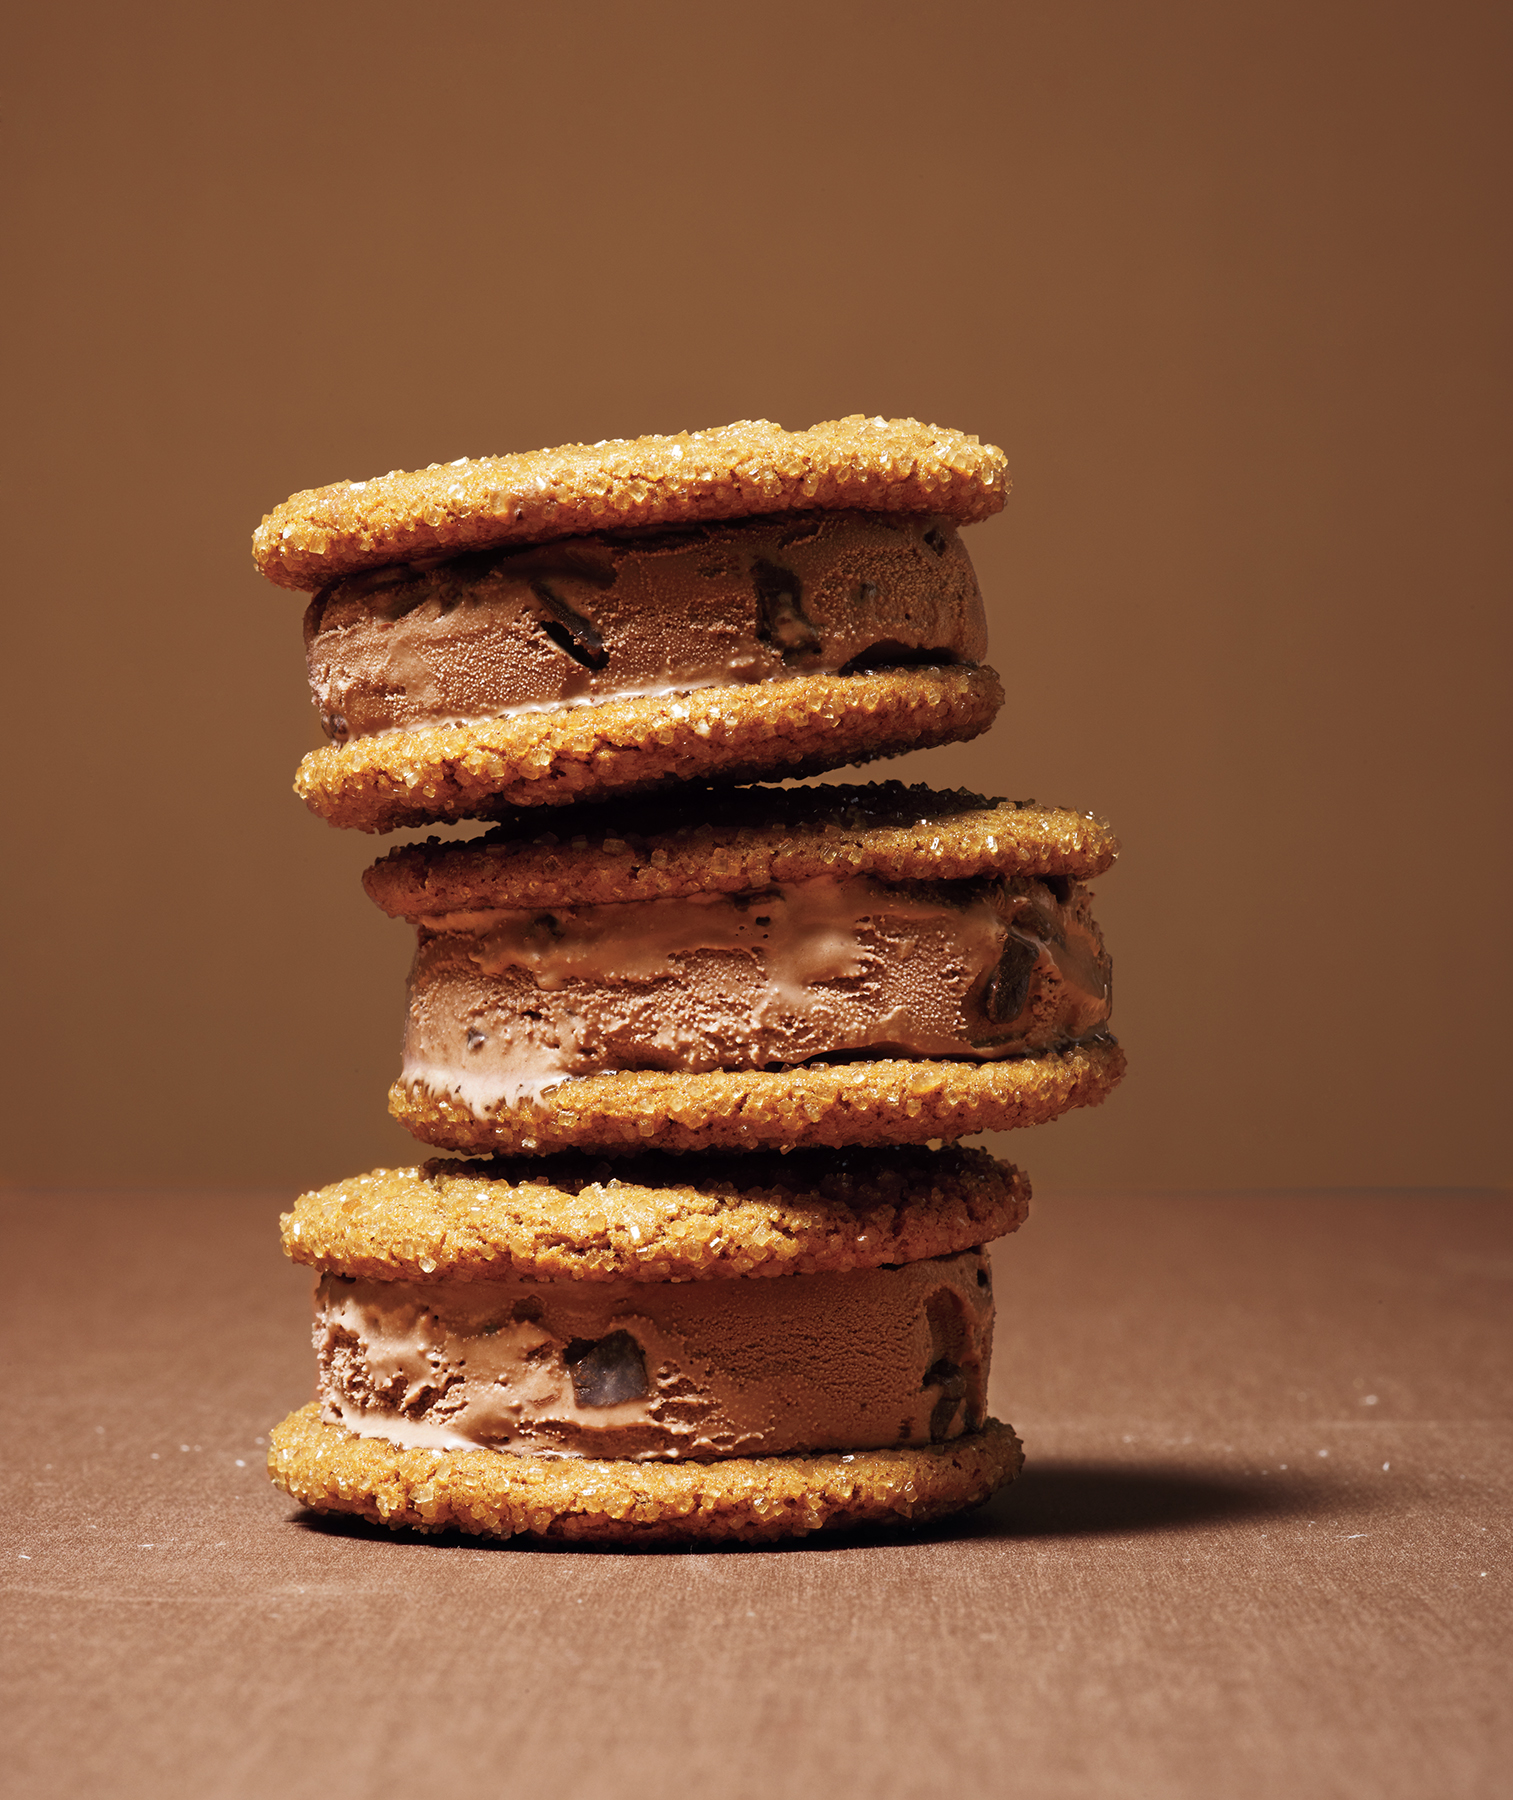 Molasses-Ginger Chocolate Ice Cream Sandwiches